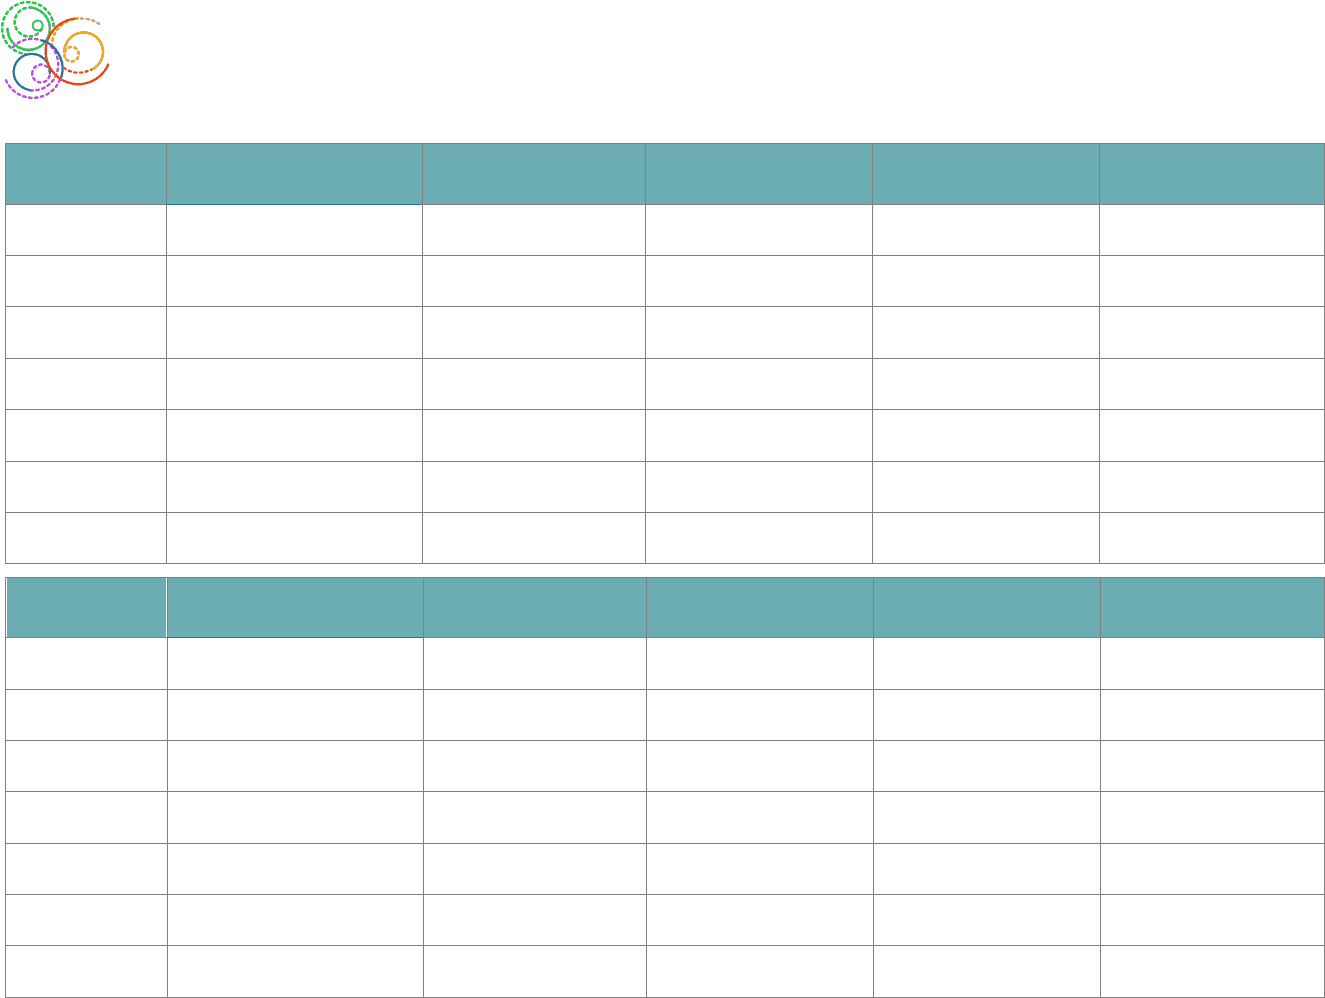 Vital Signs Log Template In Word And Formats